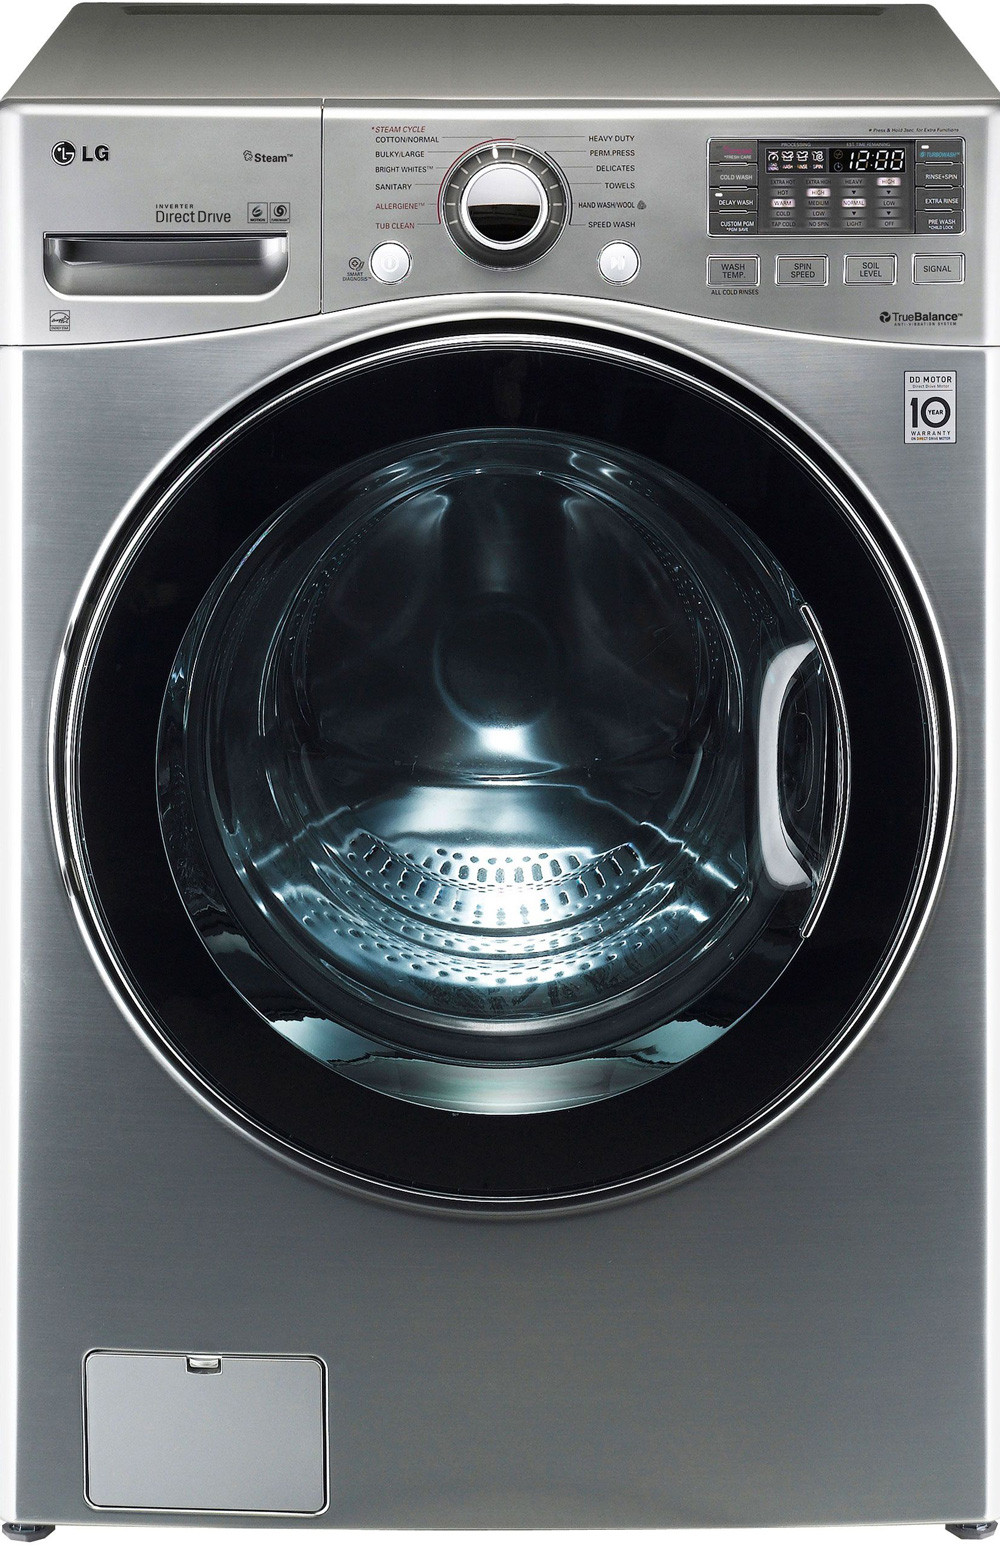 Lg Wm3470hva 27 Inch 4 0 Cu Ft Front Load Washer With 12